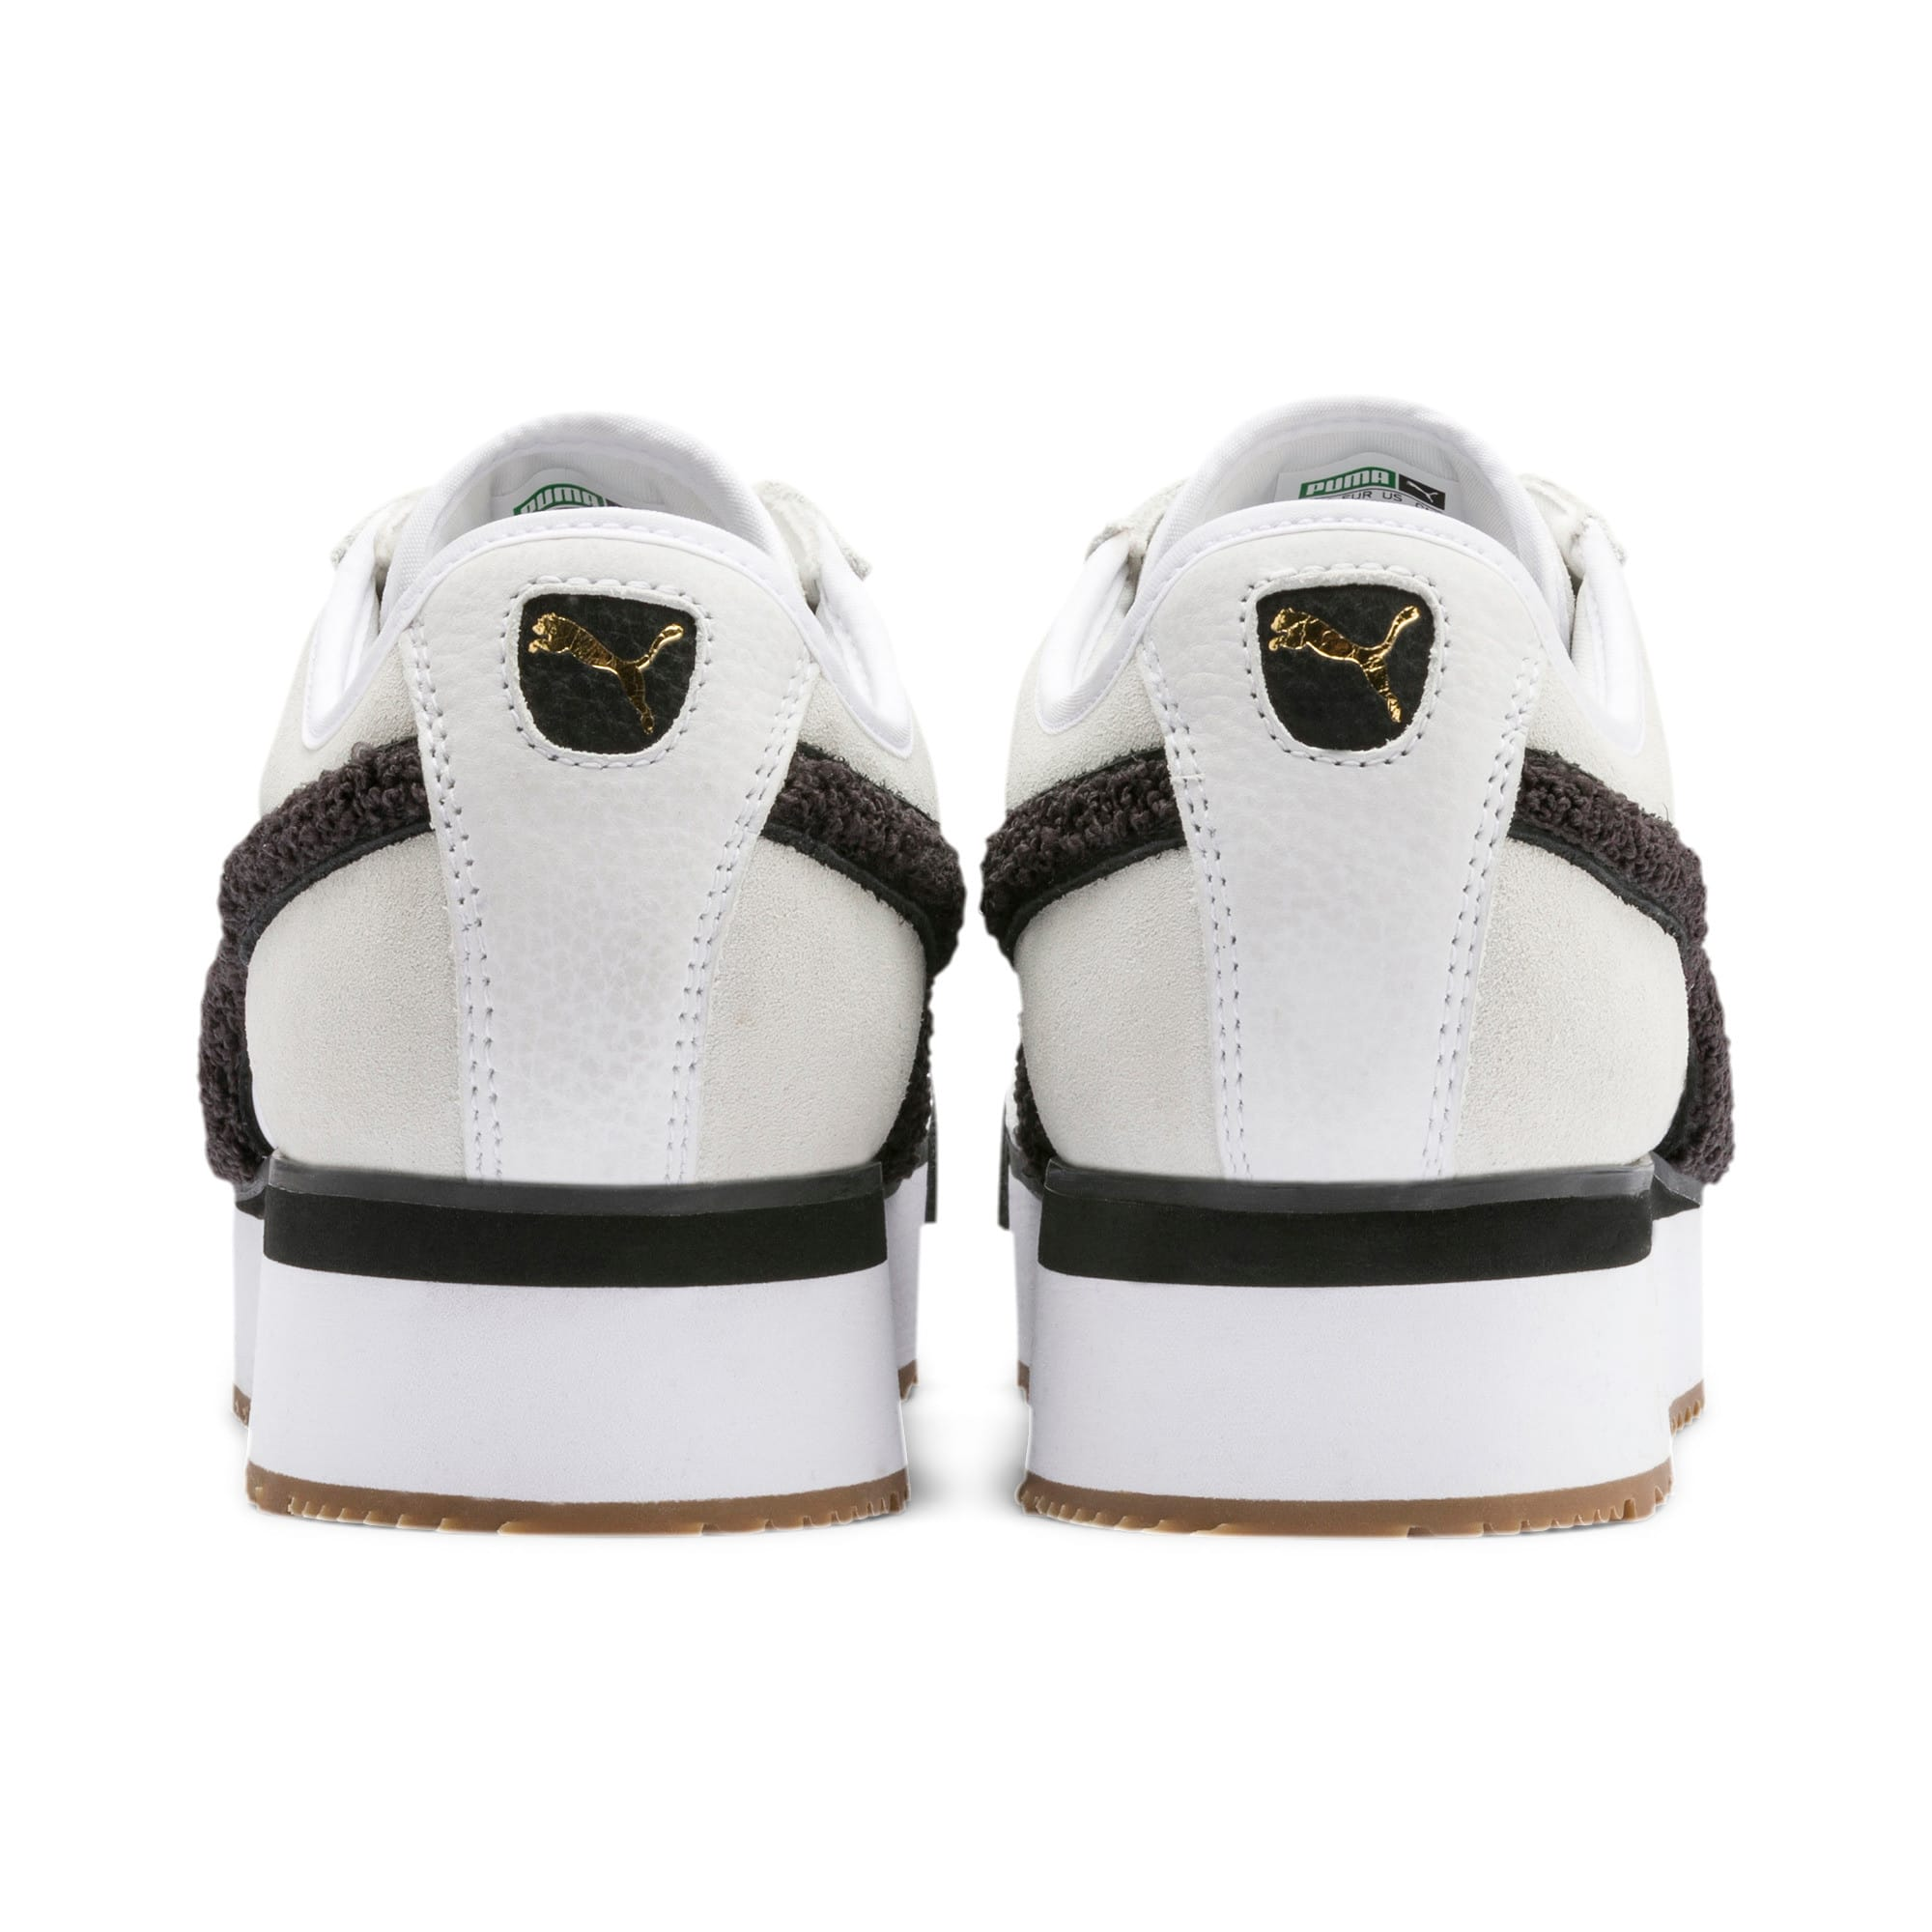 Thumbnail 4 of Roma Amor Heritage Women's Sneakers, Puma White-Puma Black, medium